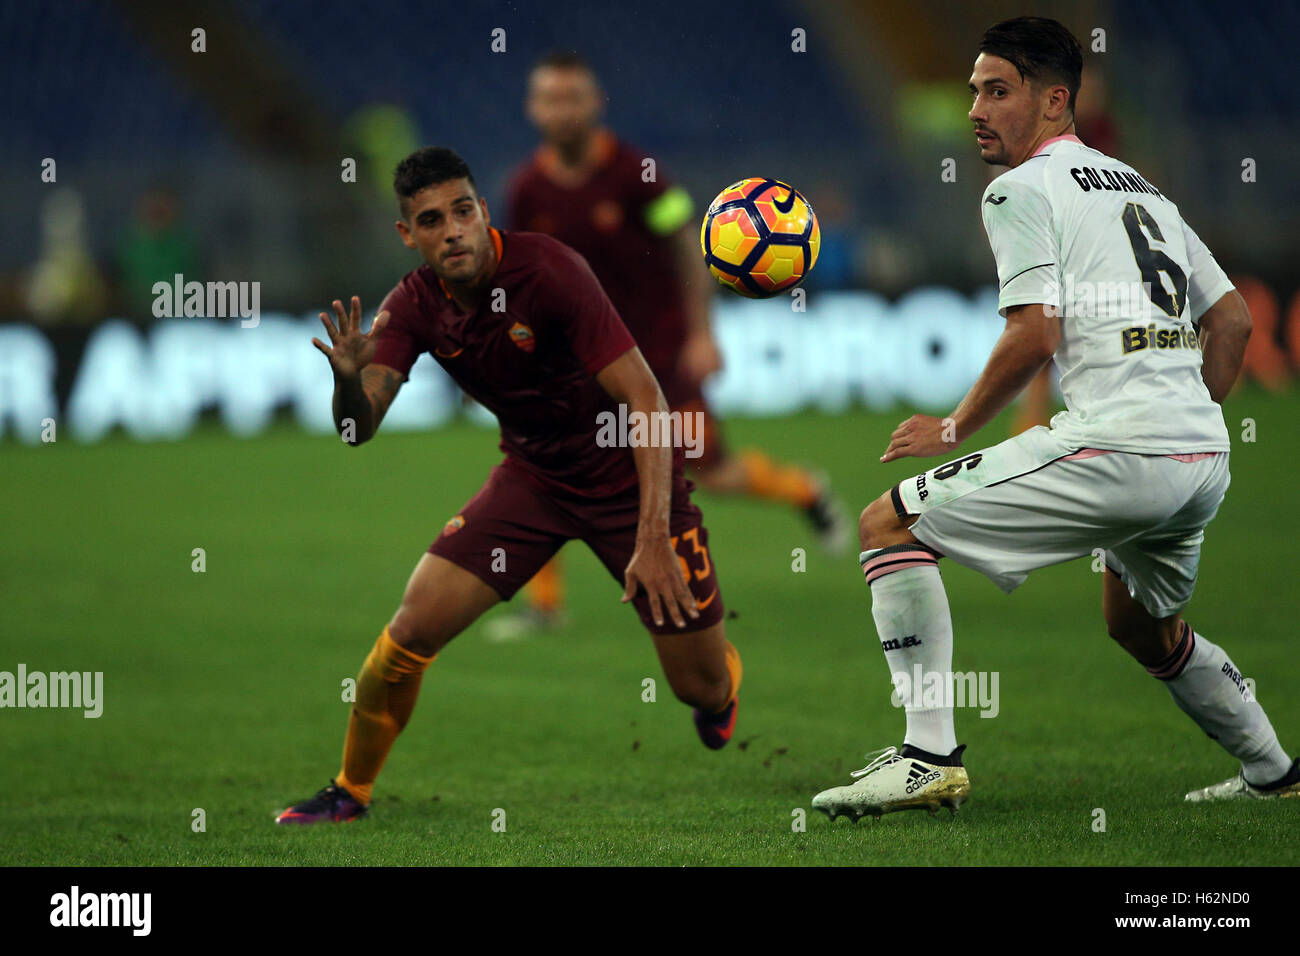 Rome Italy  Emerson Palmieri And E Goldaniga In Action During The Match Serie A League Between Roma Vs Palermo In Olimpic Stadium In Rome